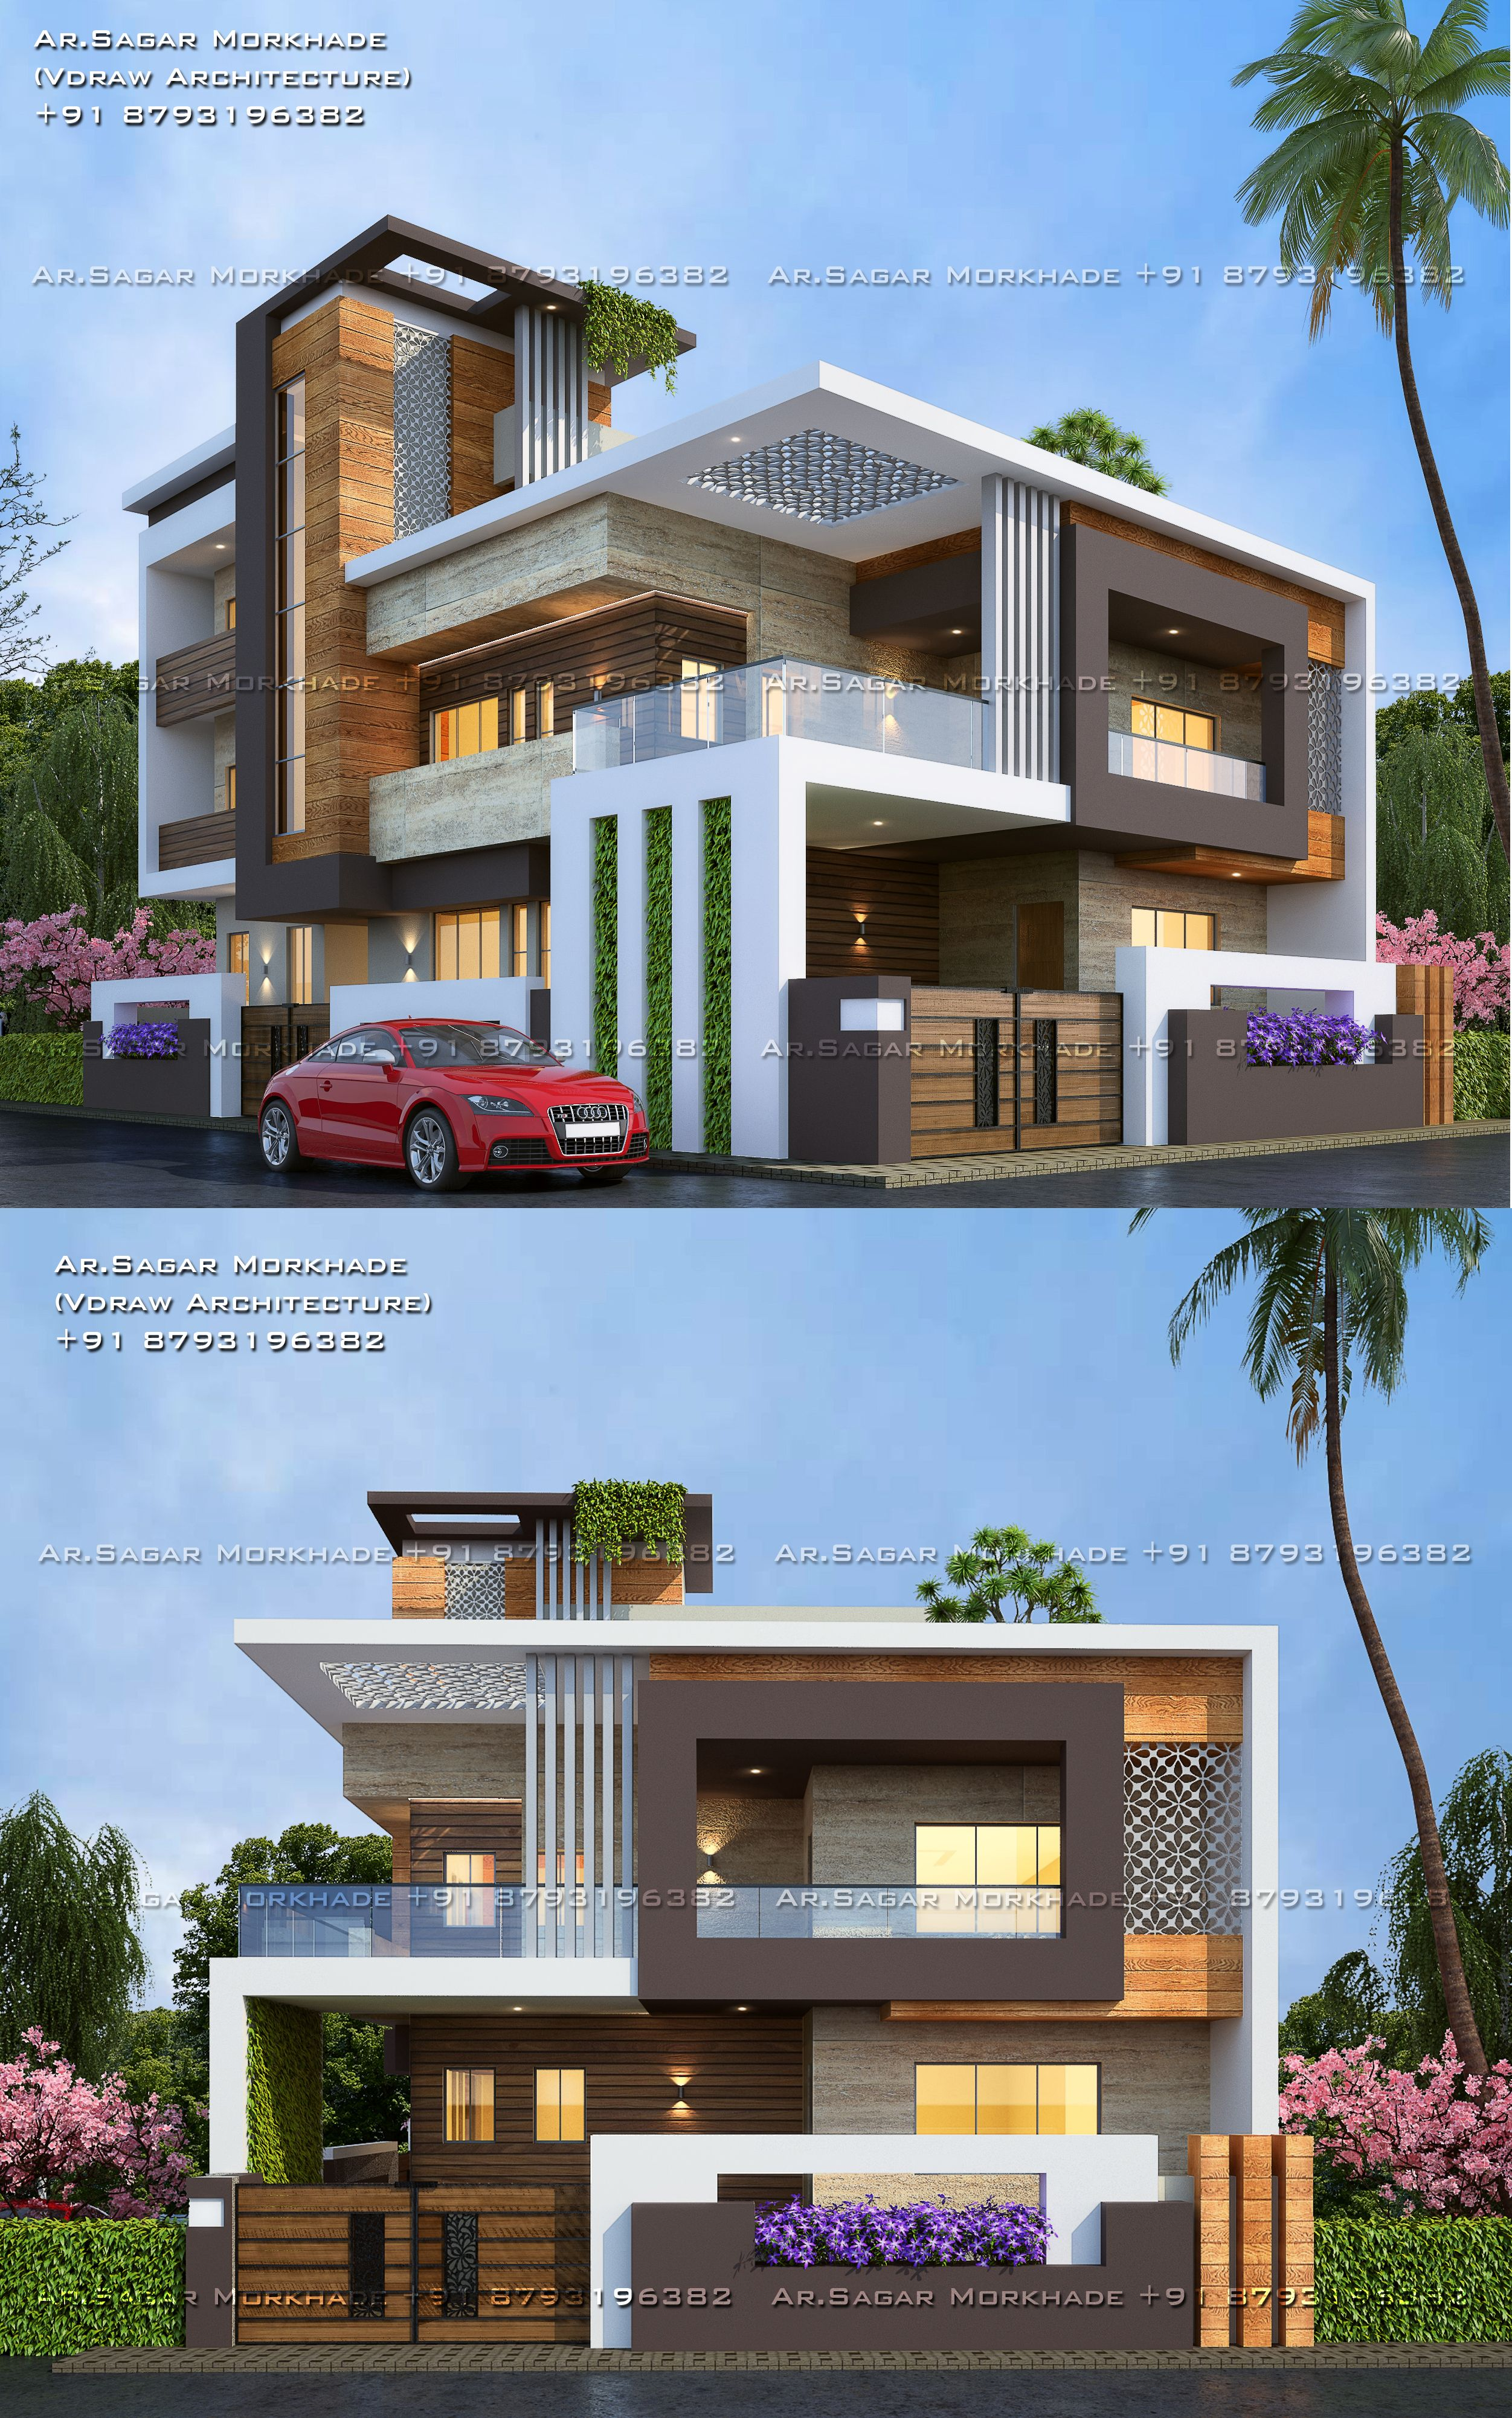 Modern Residential House Bungalow Exterior By Ar Sagar Morkhade Vdraw Architectur House Front Design Modern Architecture House House Architecture Design